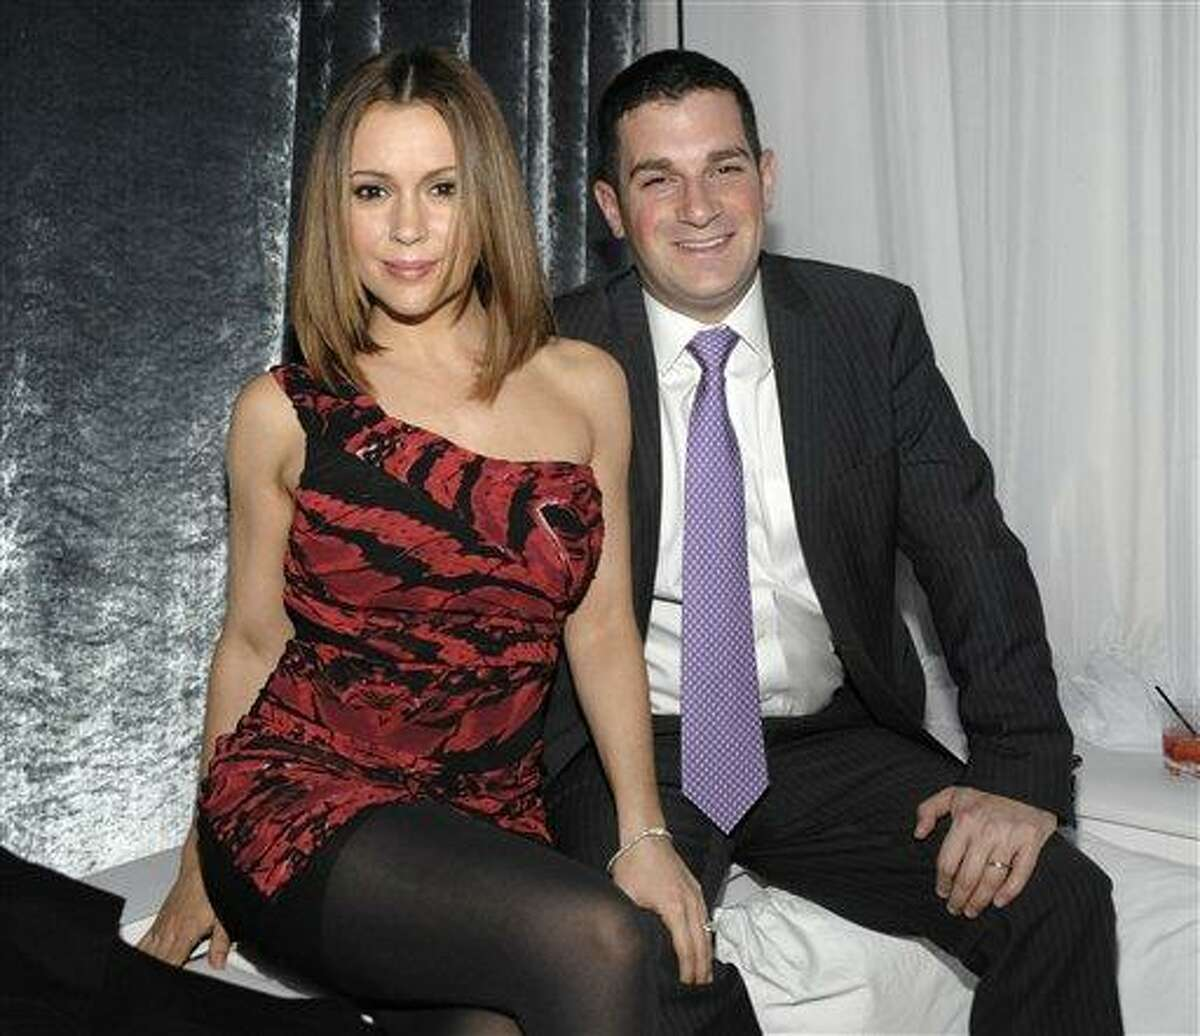 In this Dec. 14, 2010 file photo, actress Alyssa Milano, left, and her husband, David Bugliari appear at the Blu-ray and DVD release party for the animated film